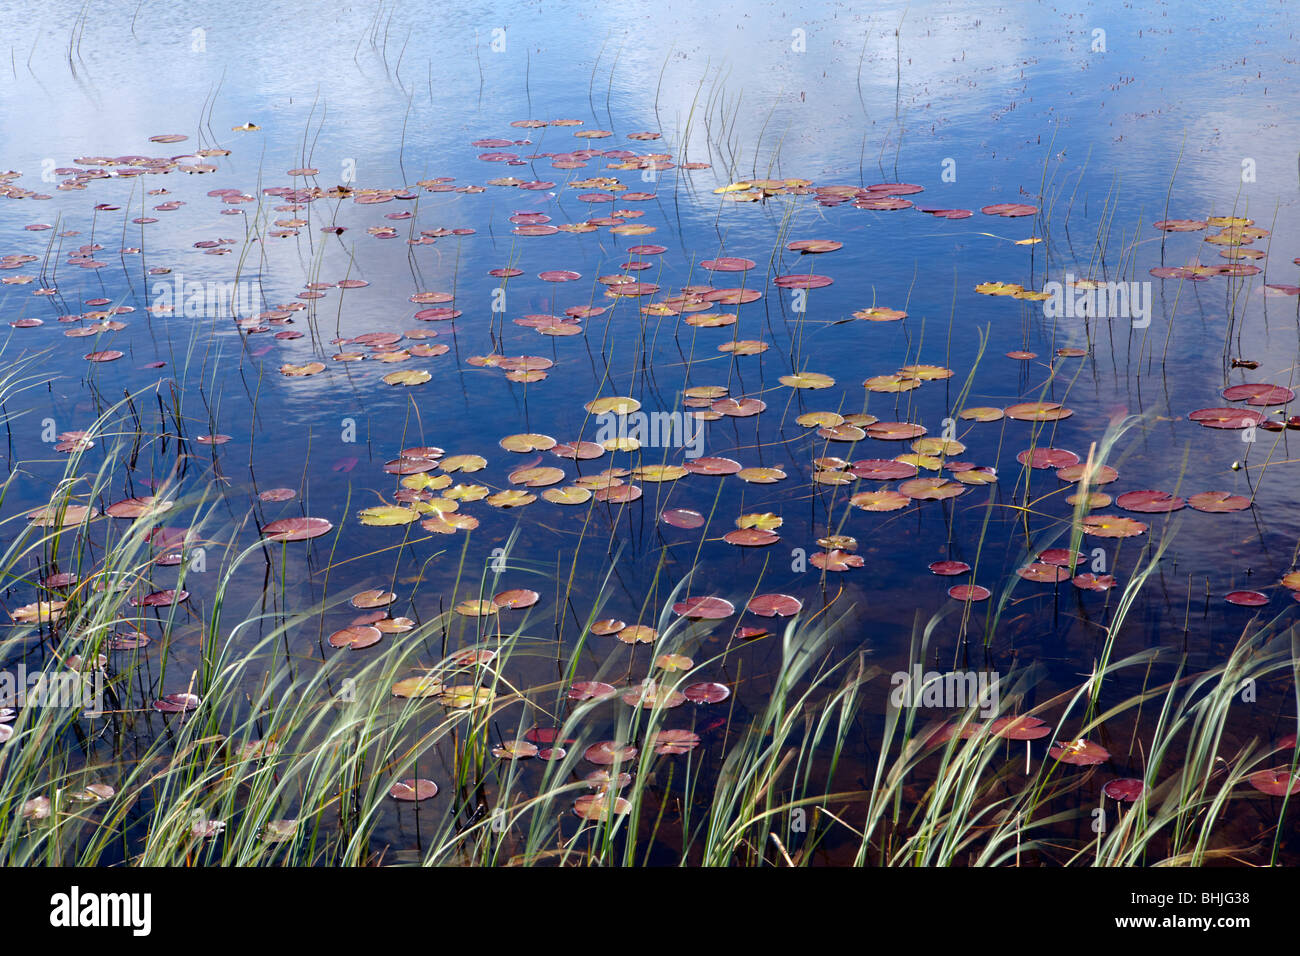 Waterlilies and cloud reflections in a lochan on North Uist, Scotland - Stock Image